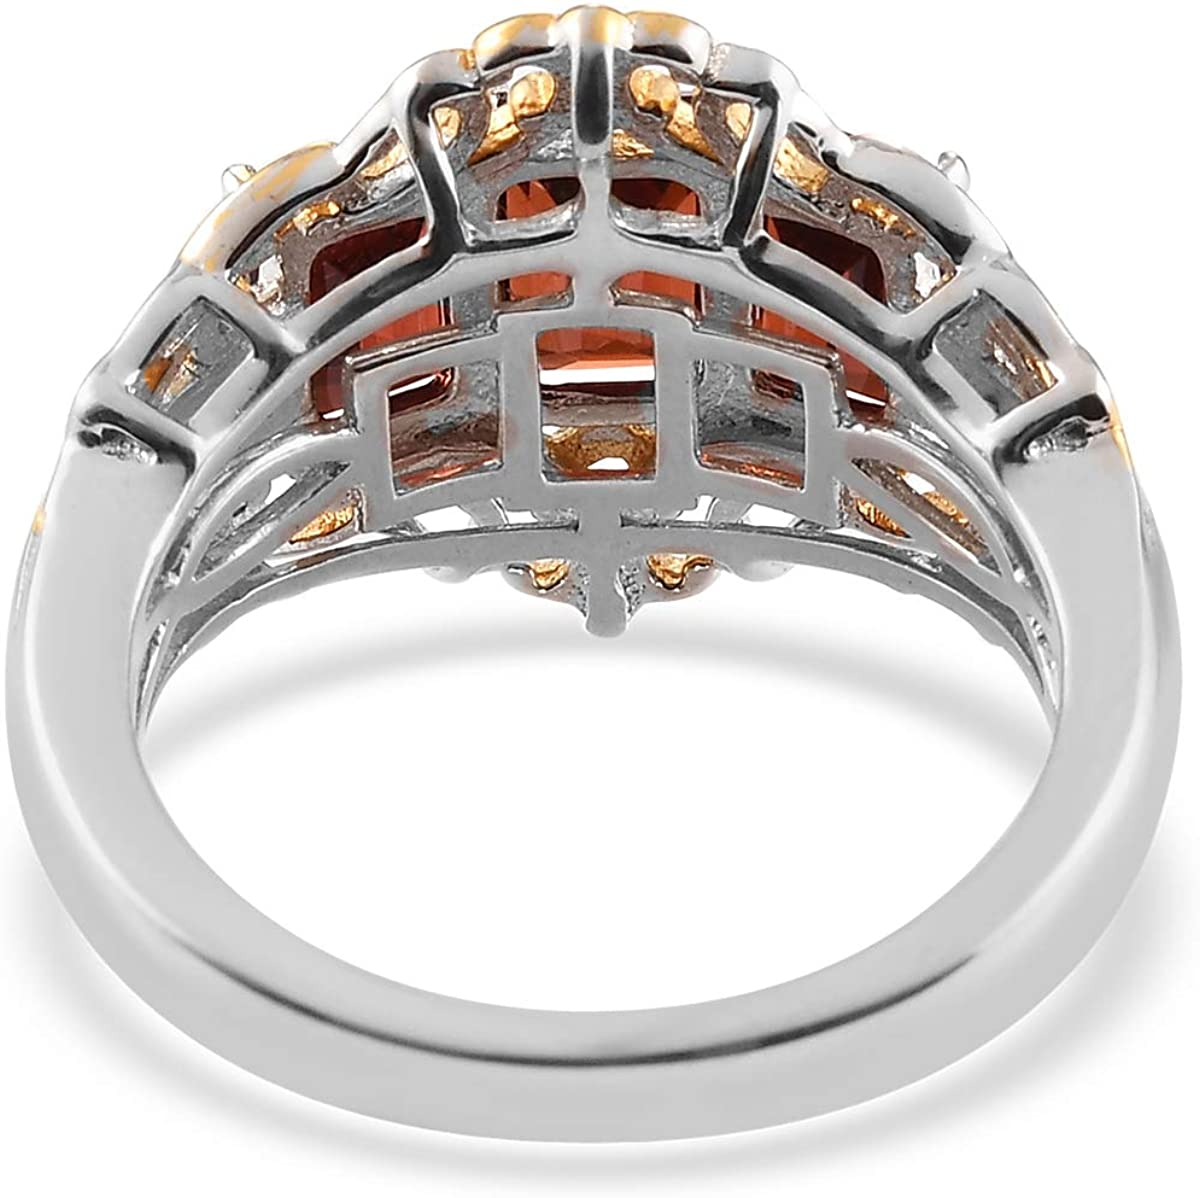 925 Sterling Silver Vermeil Yellow Gold Platinum Plated Octagon Garnet Zircon Ring Engagement Wedding Anniversary Bridal Jewelry Valentines Gift For Her Size 6 Ct 2.4